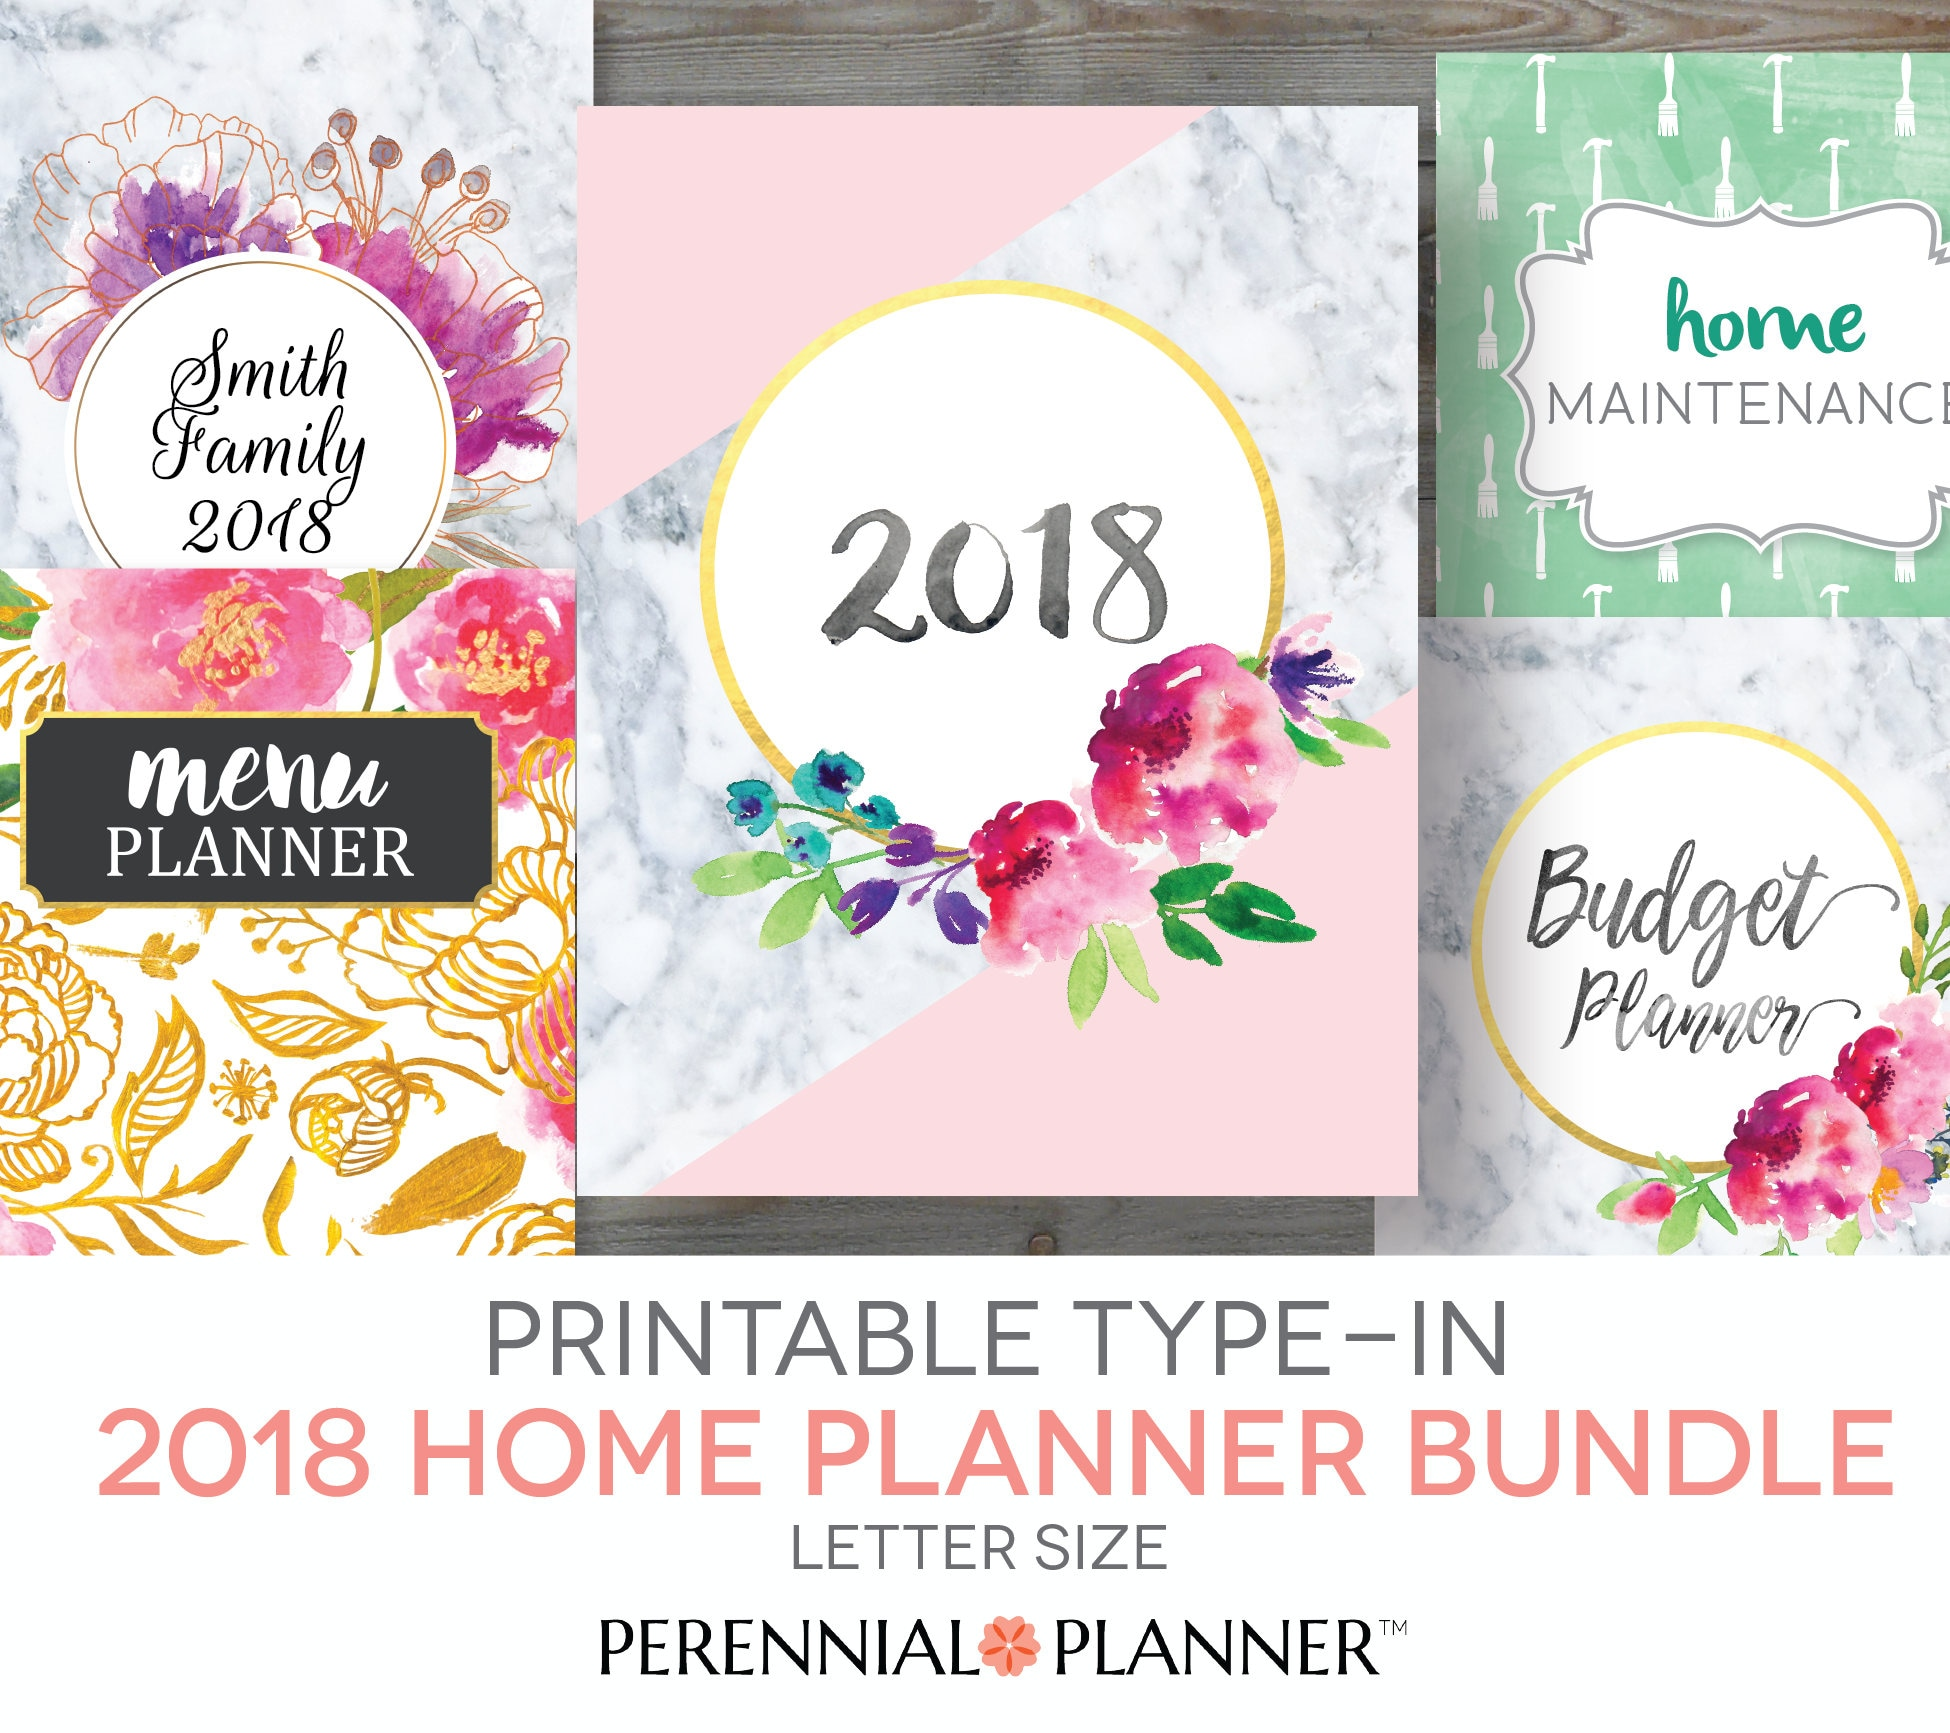 Printable Planner 2018 Home Management Binder Editable